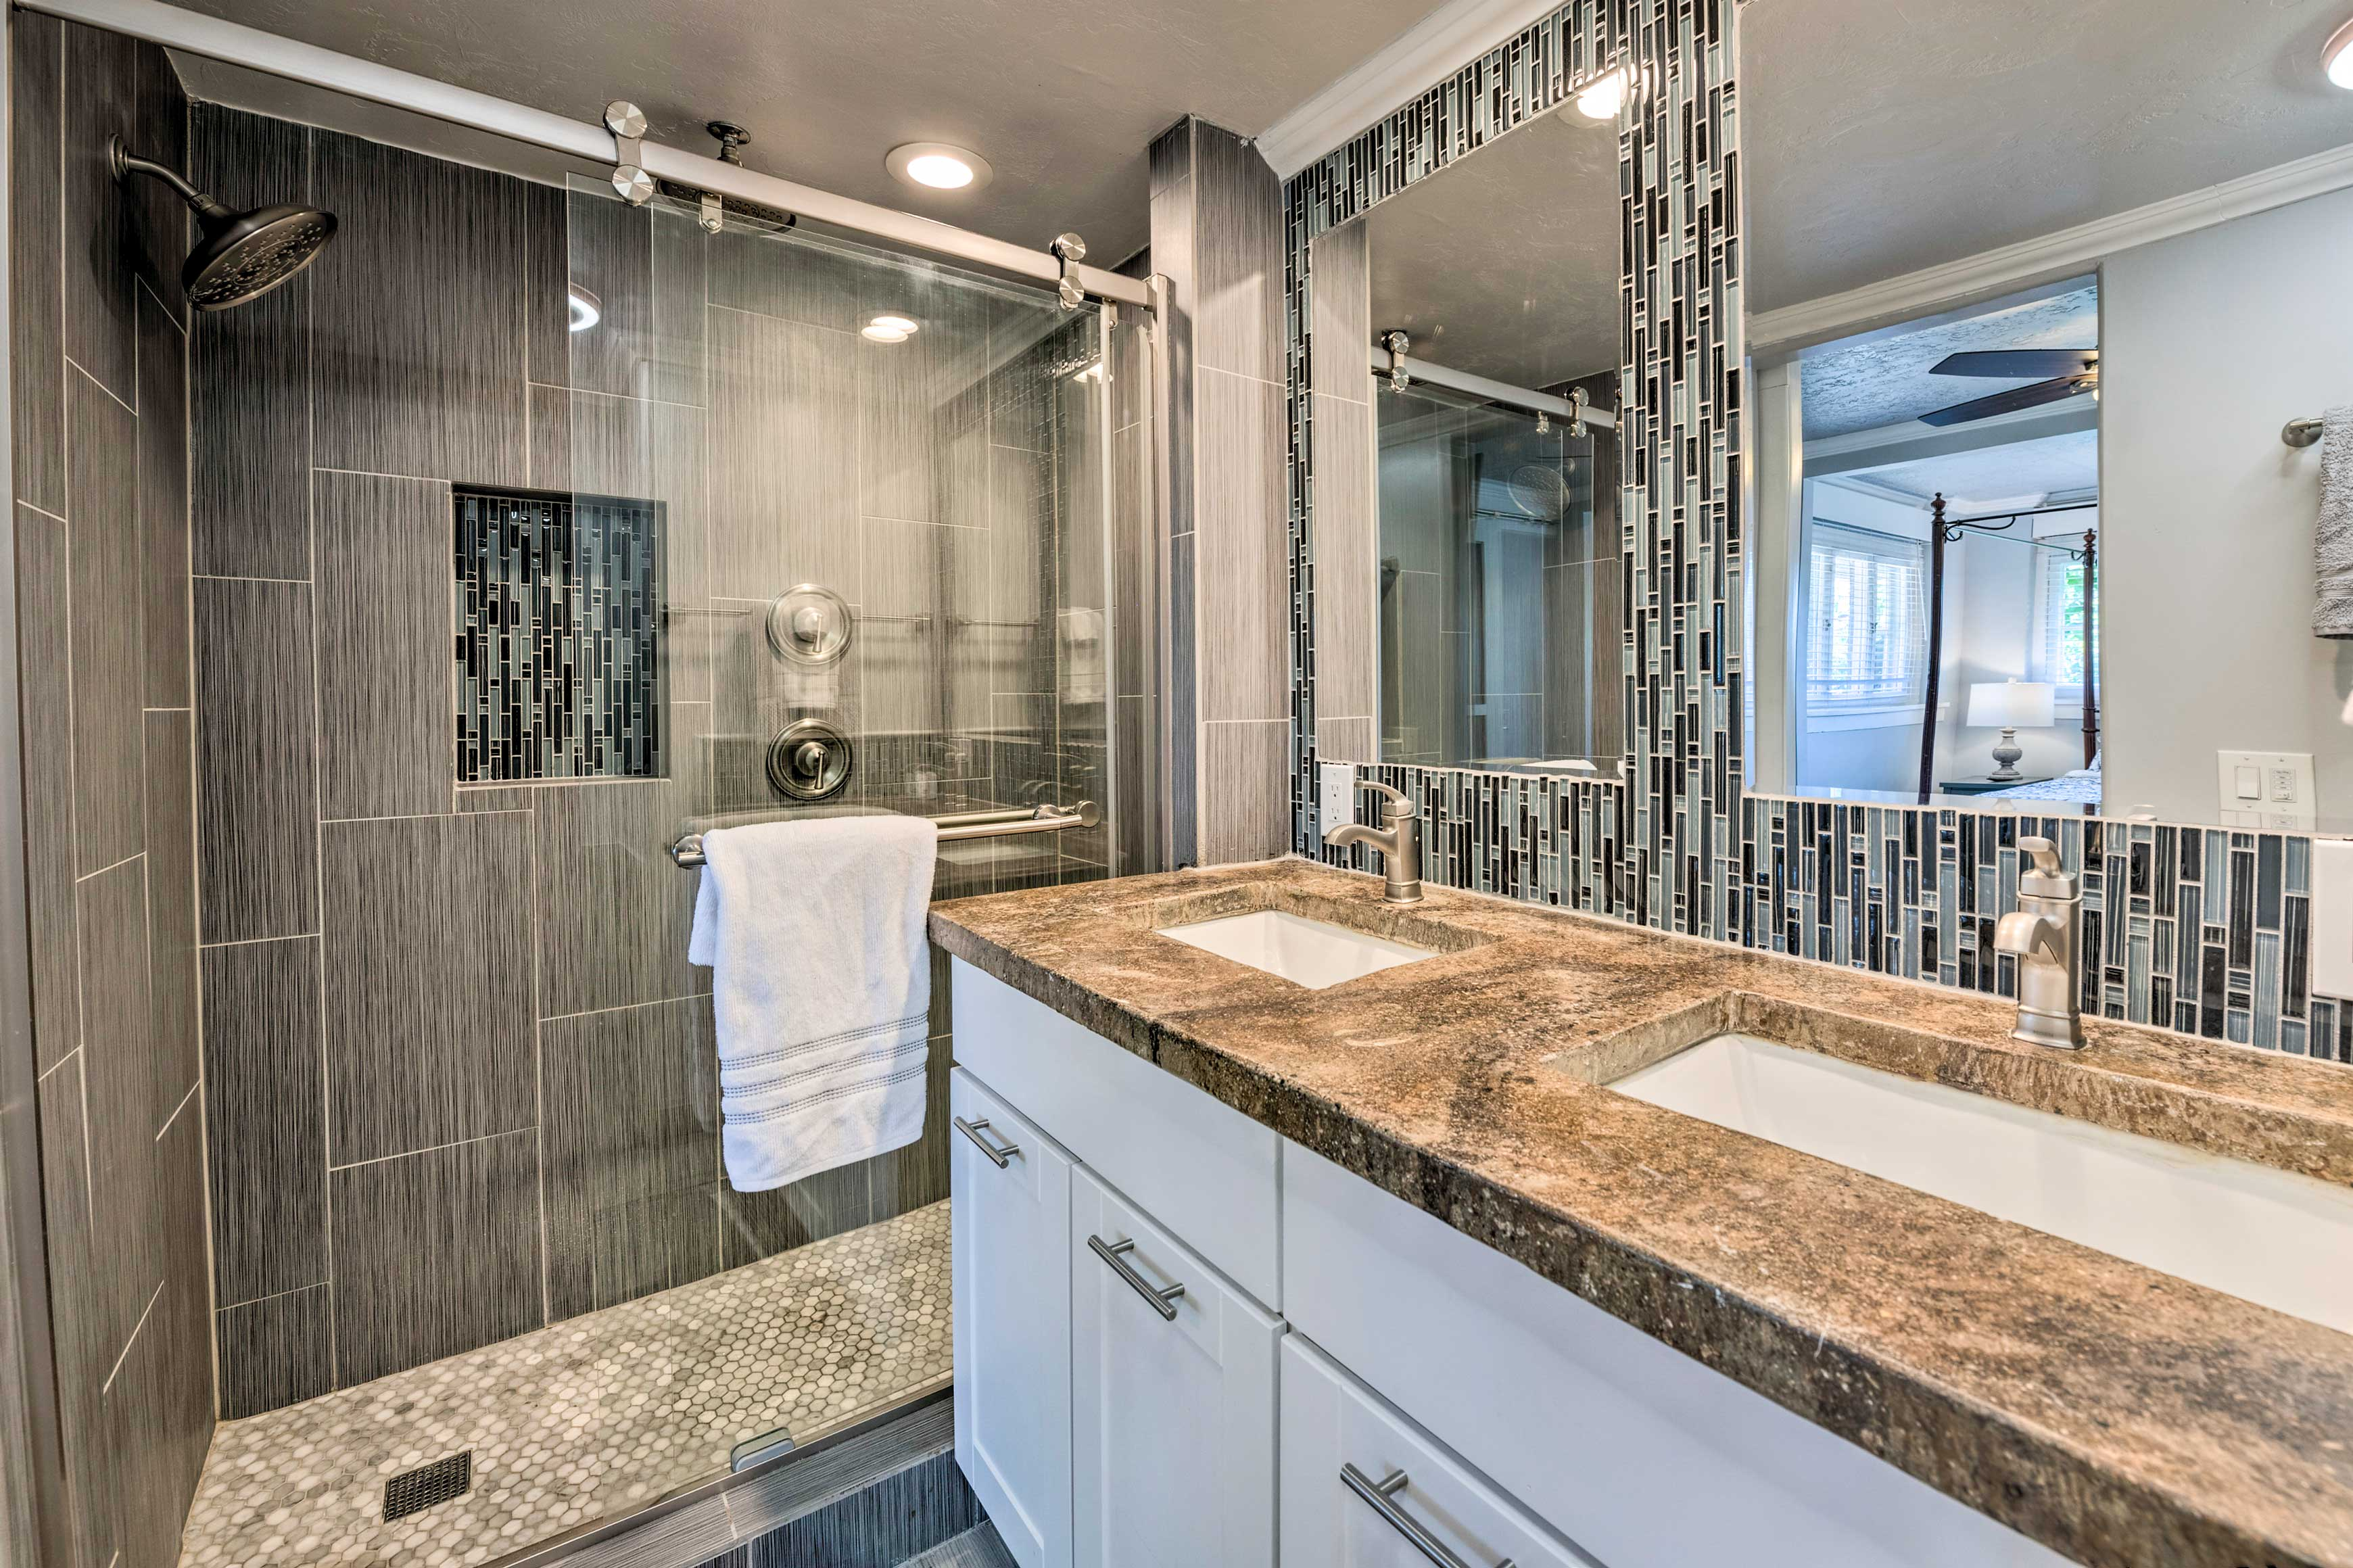 Rinse off in this immaculate bathroom.